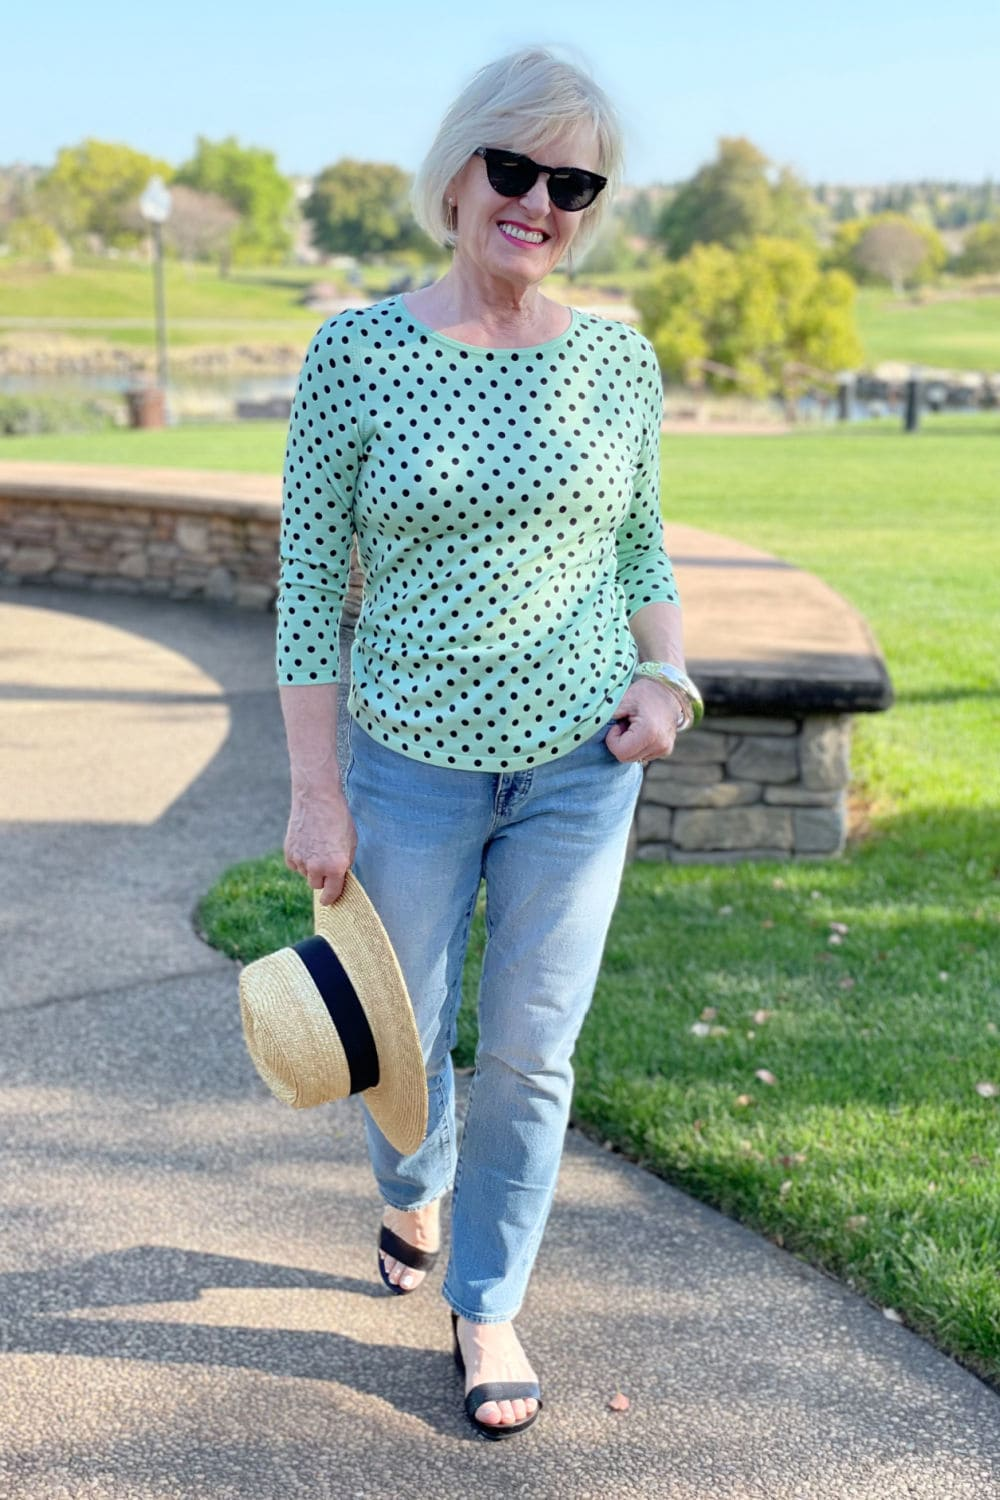 woman walking on path wearing causal green polka dots